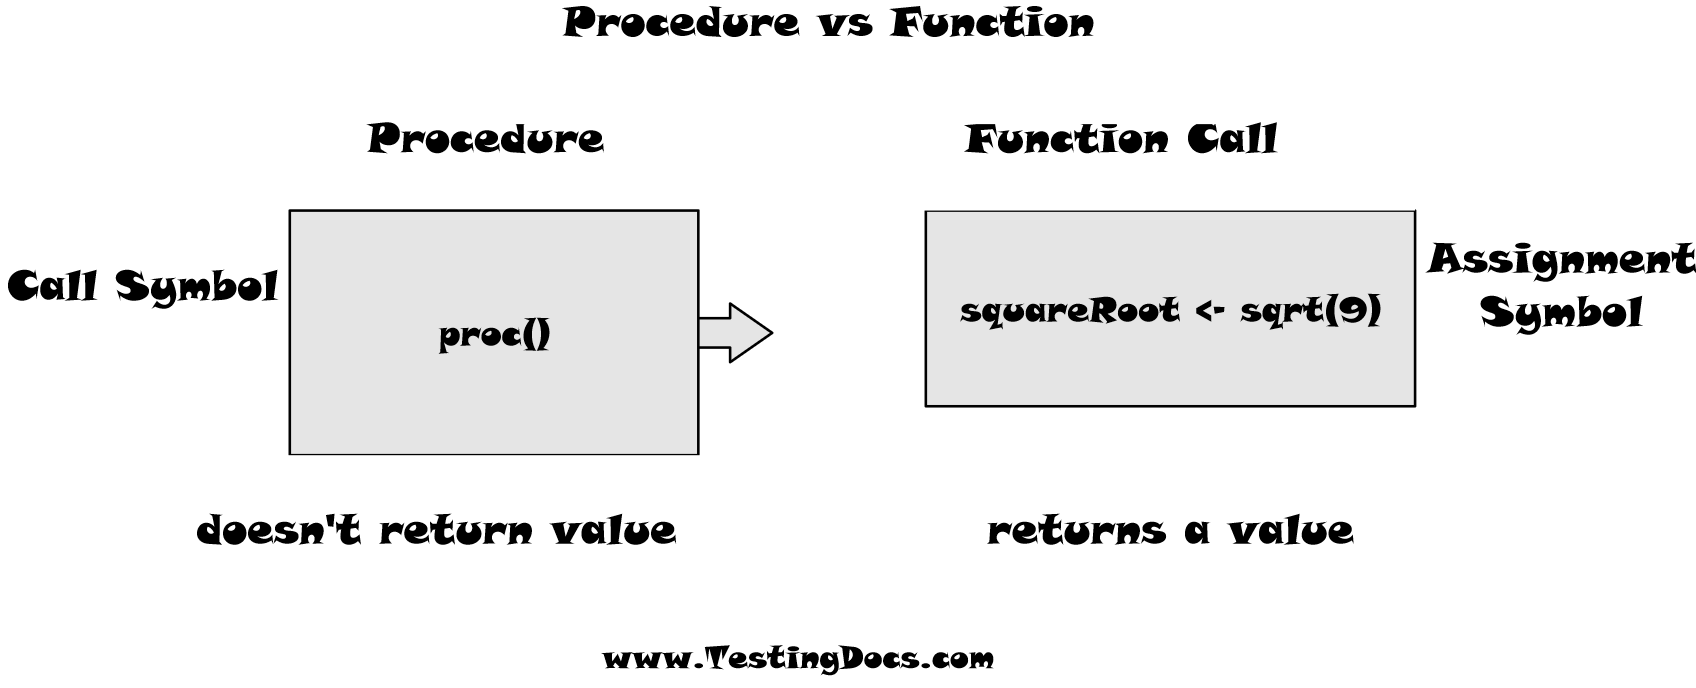 Procedure vs Function RAPTOR